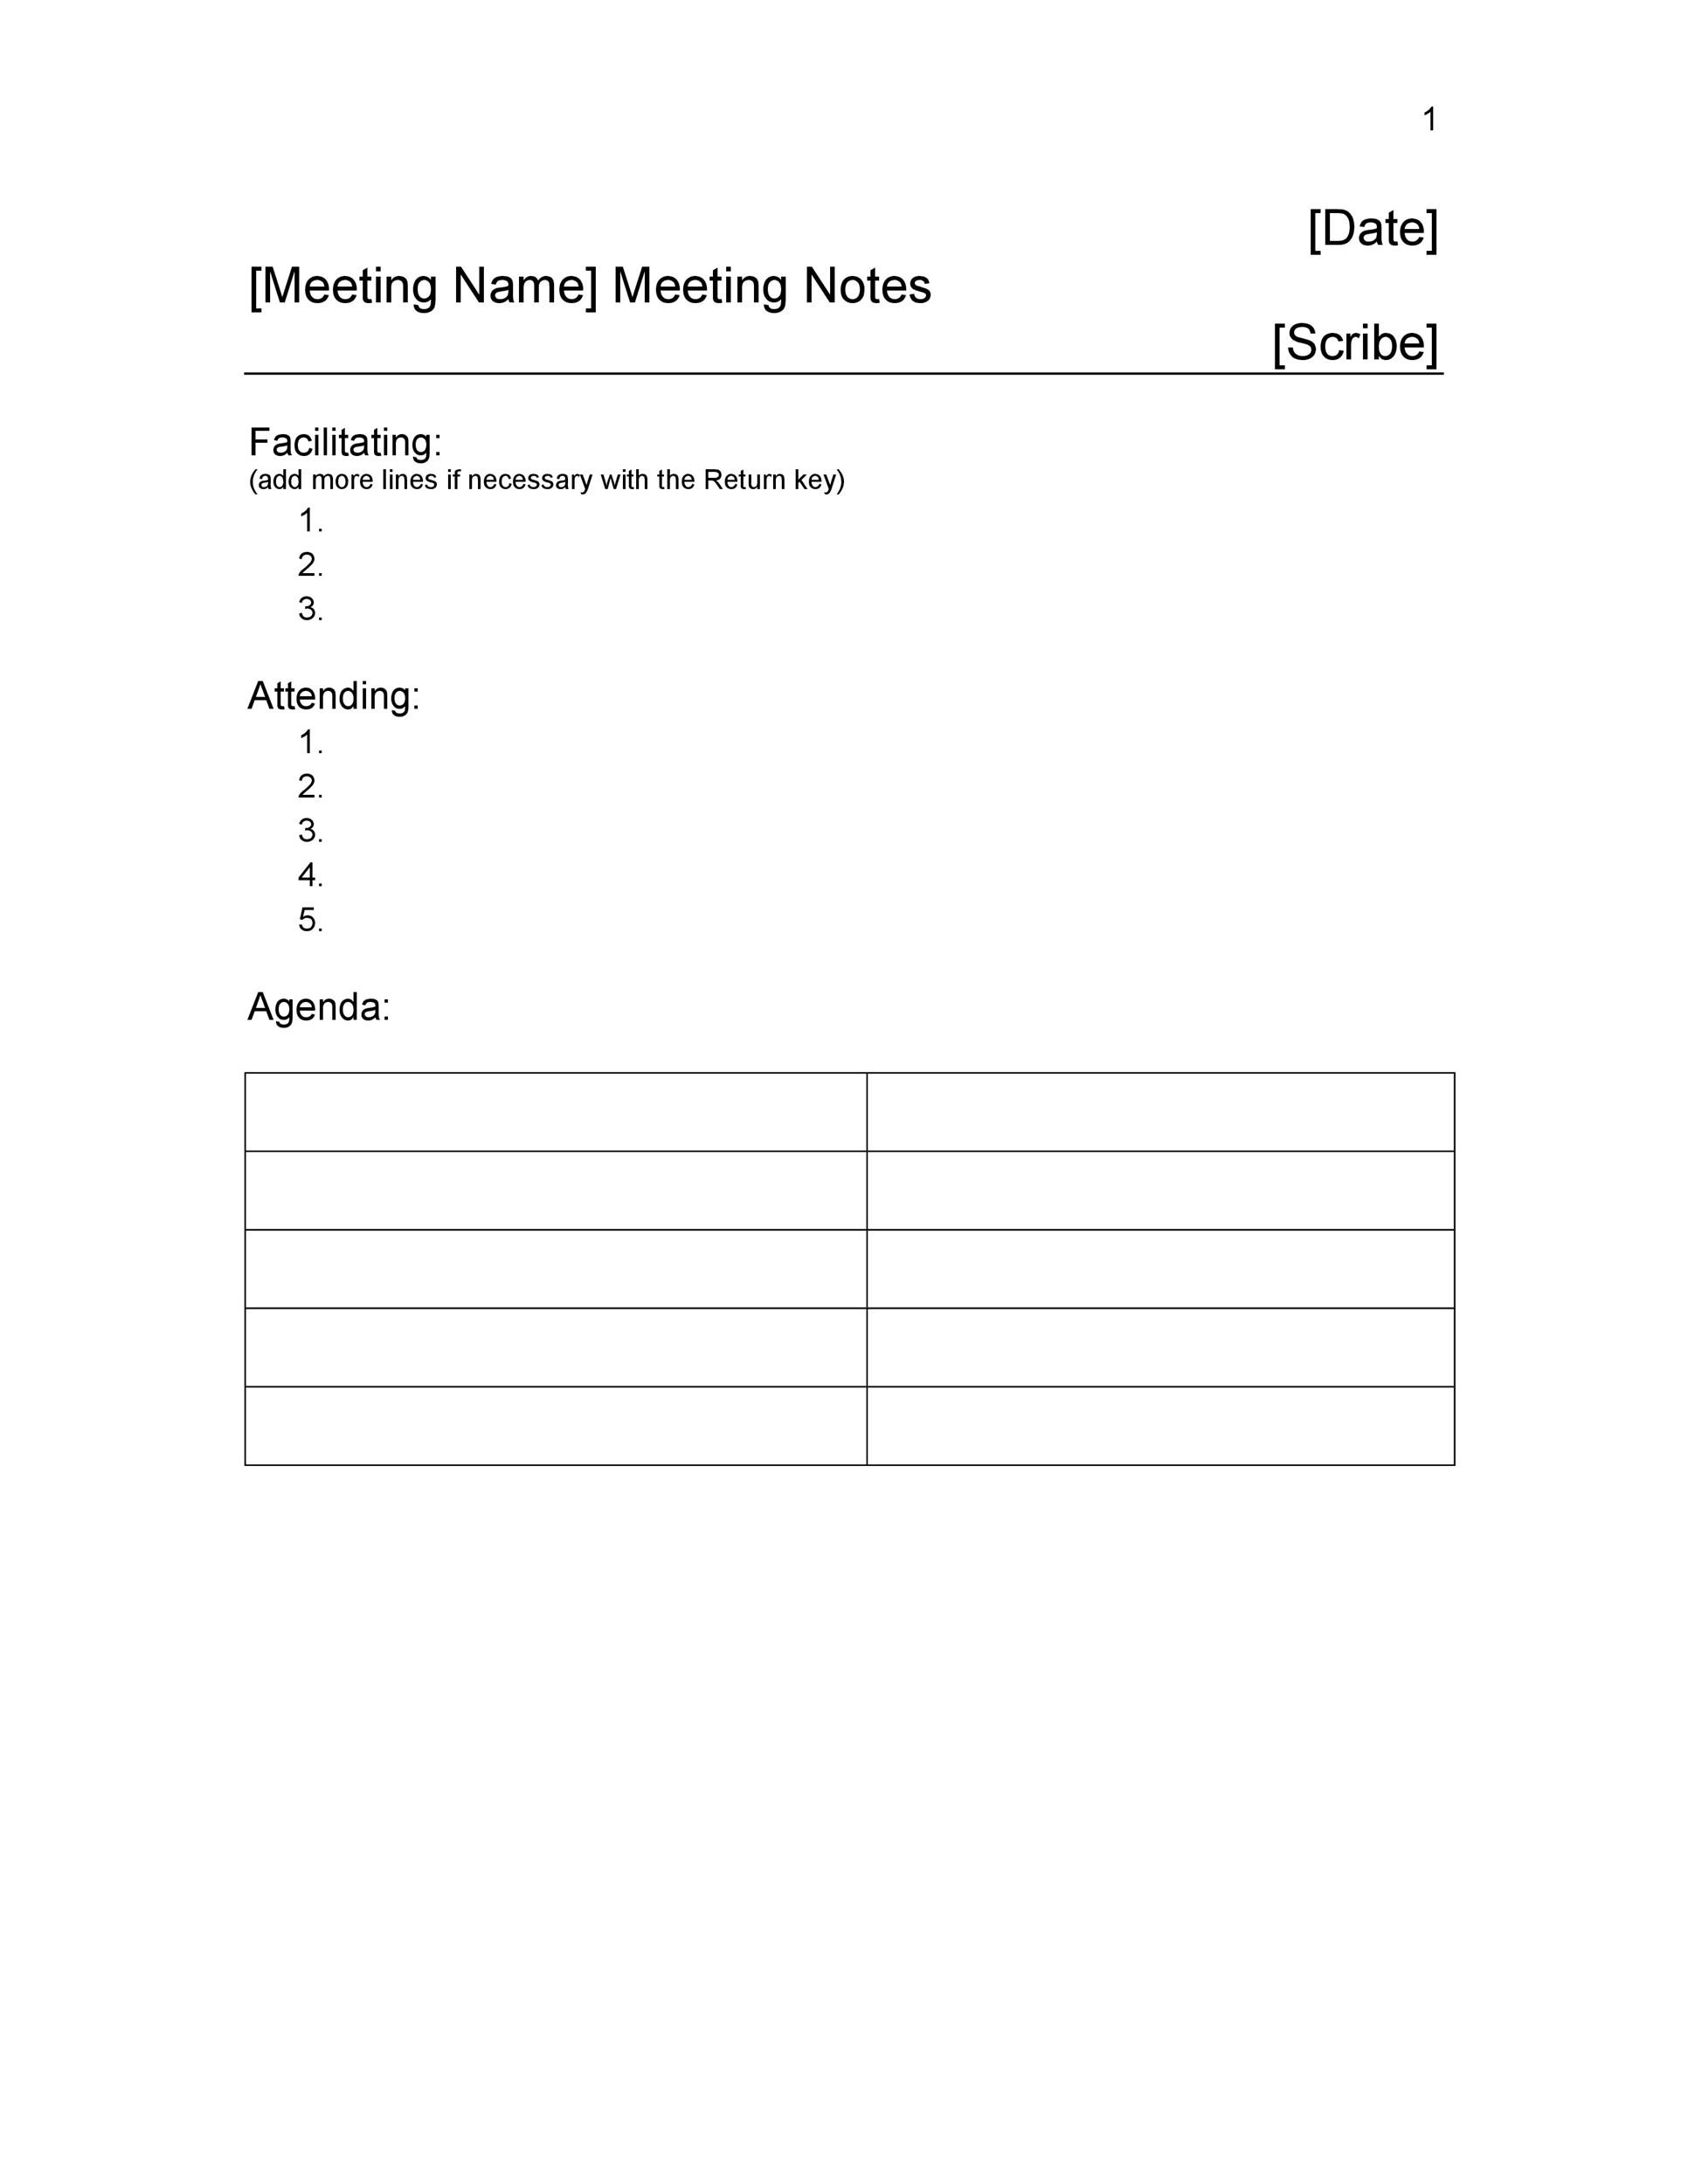 Doc485611 Minute Notes Template 20 Handy Meeting Minutes – Minutes Notes Template